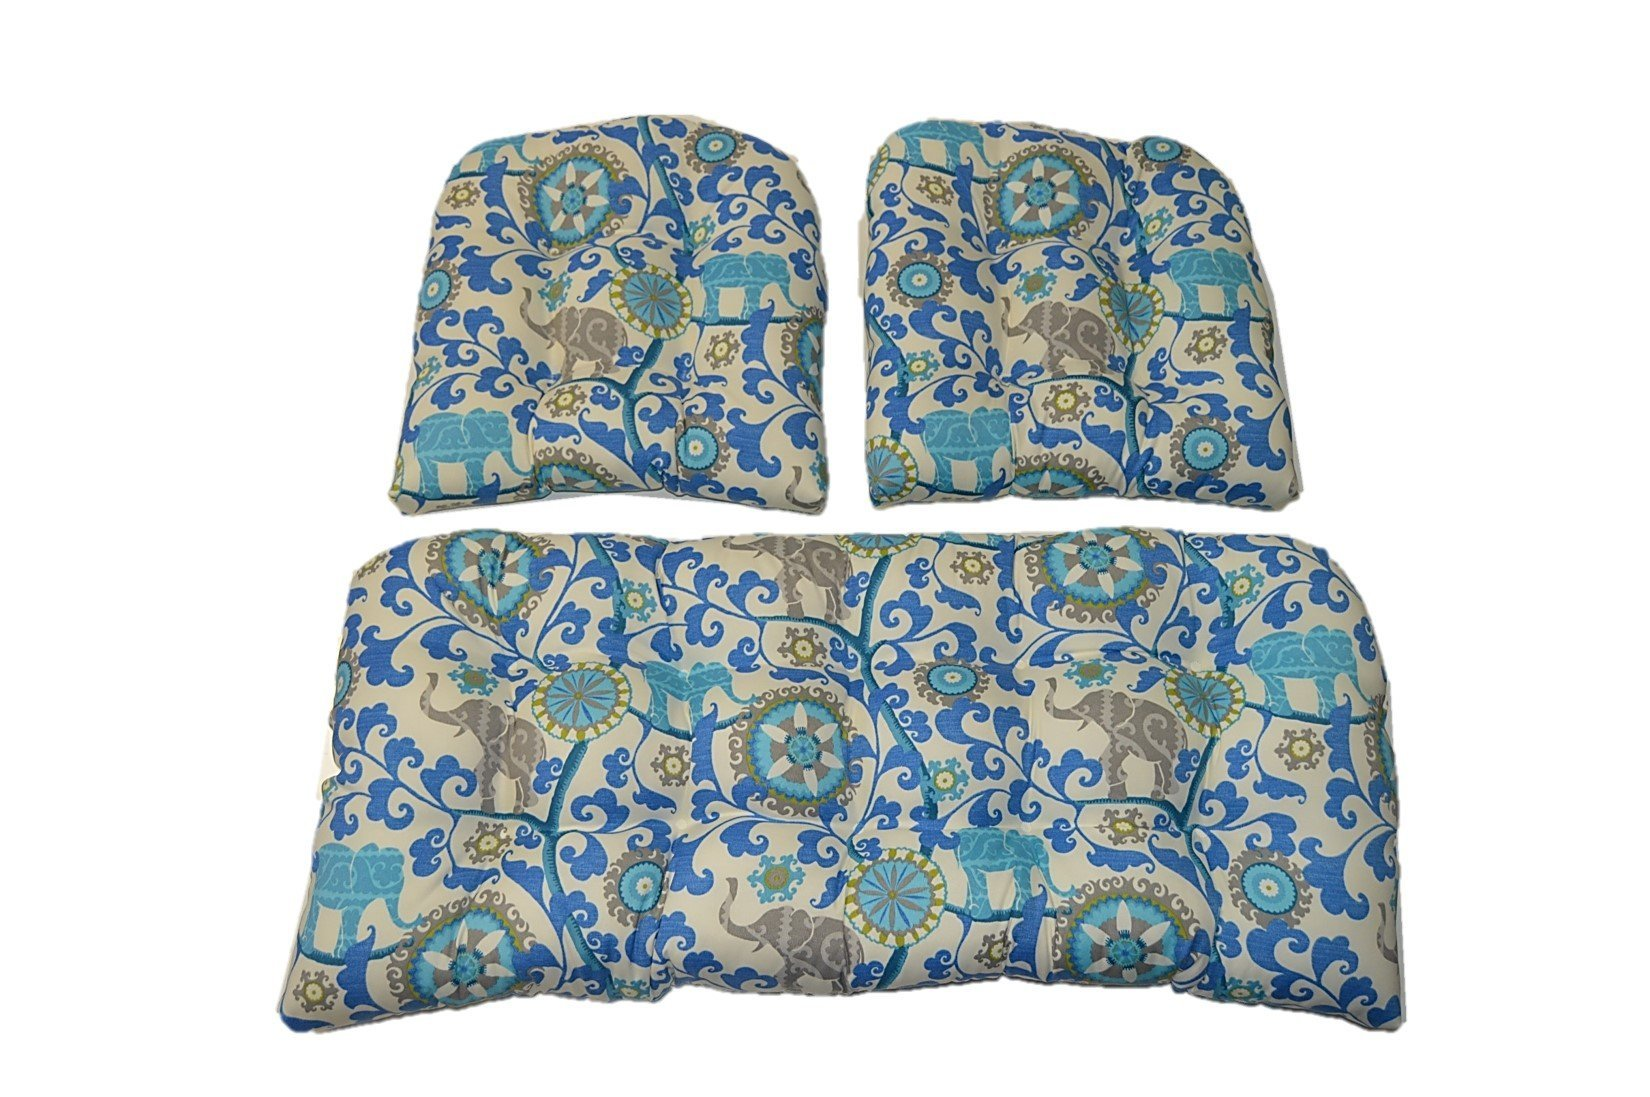 3 Piece Wicker Cushion Set - Indoor / Outdoor Sapphire Blue, Turquoise, Green, Gray Bohemian Elephant Wicker Loveseat Settee & 2 Matching Chair Cushions